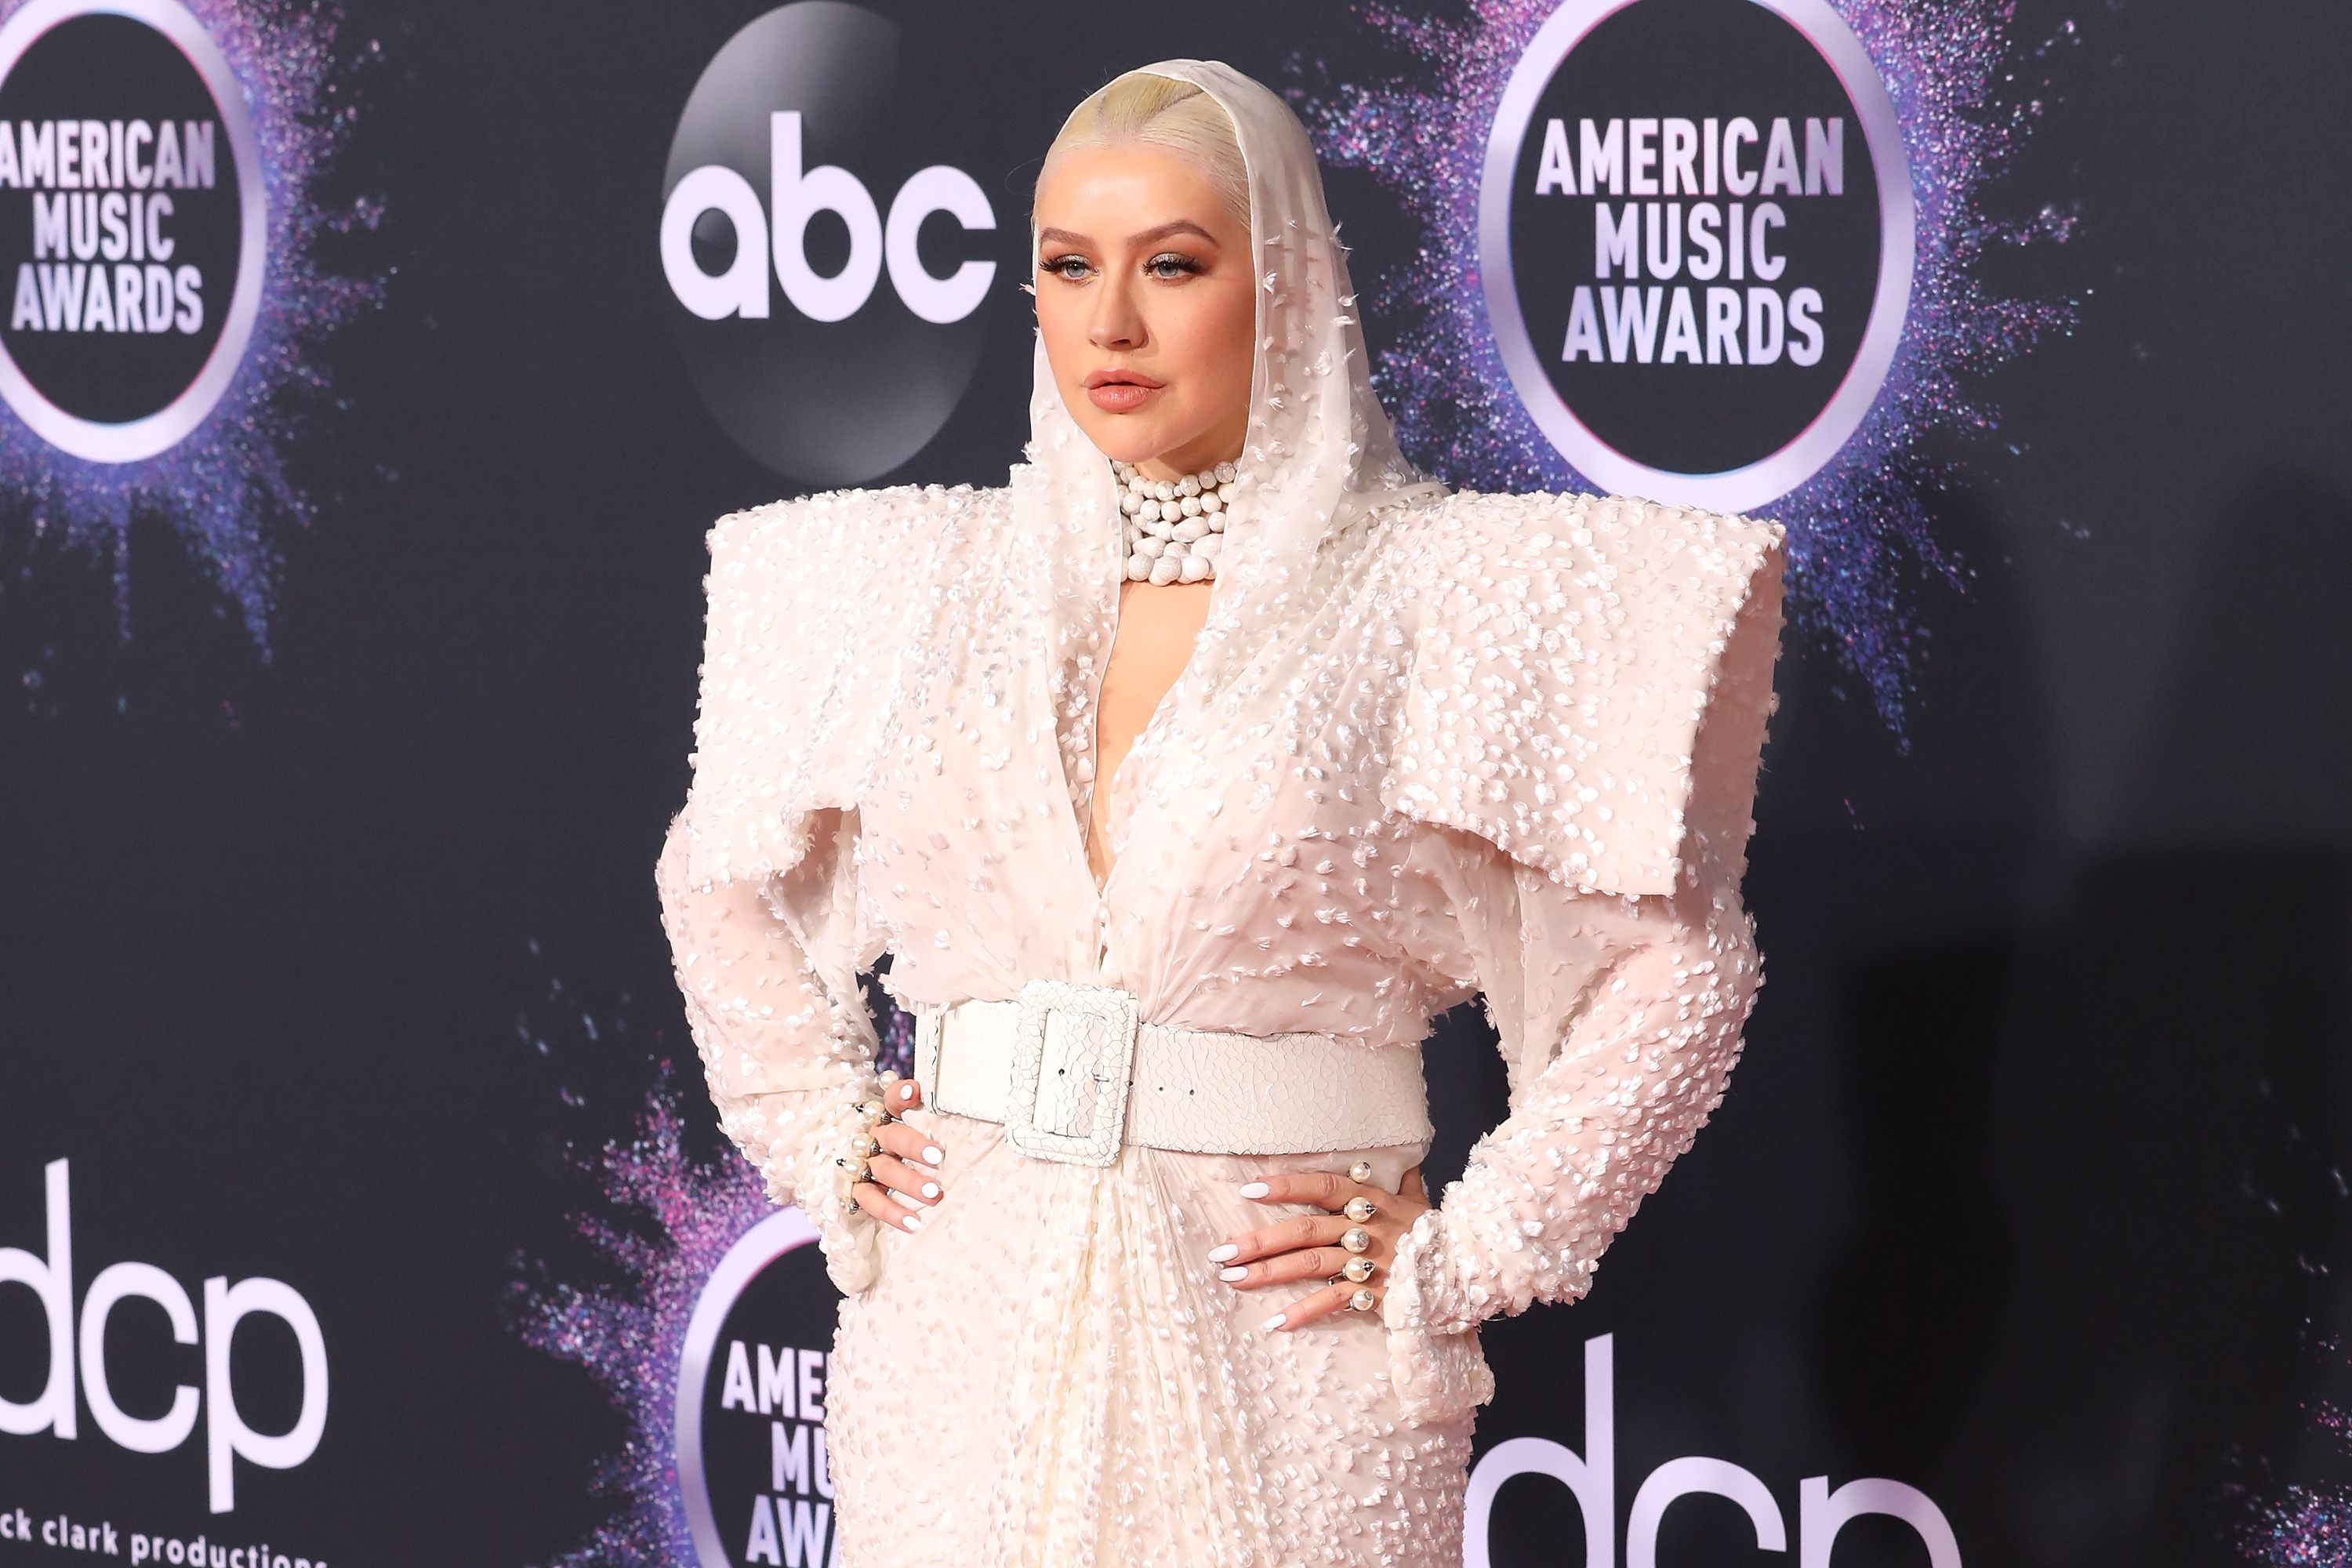 The best Twitter reactions to Christina Aguilera's American Music Awards dress